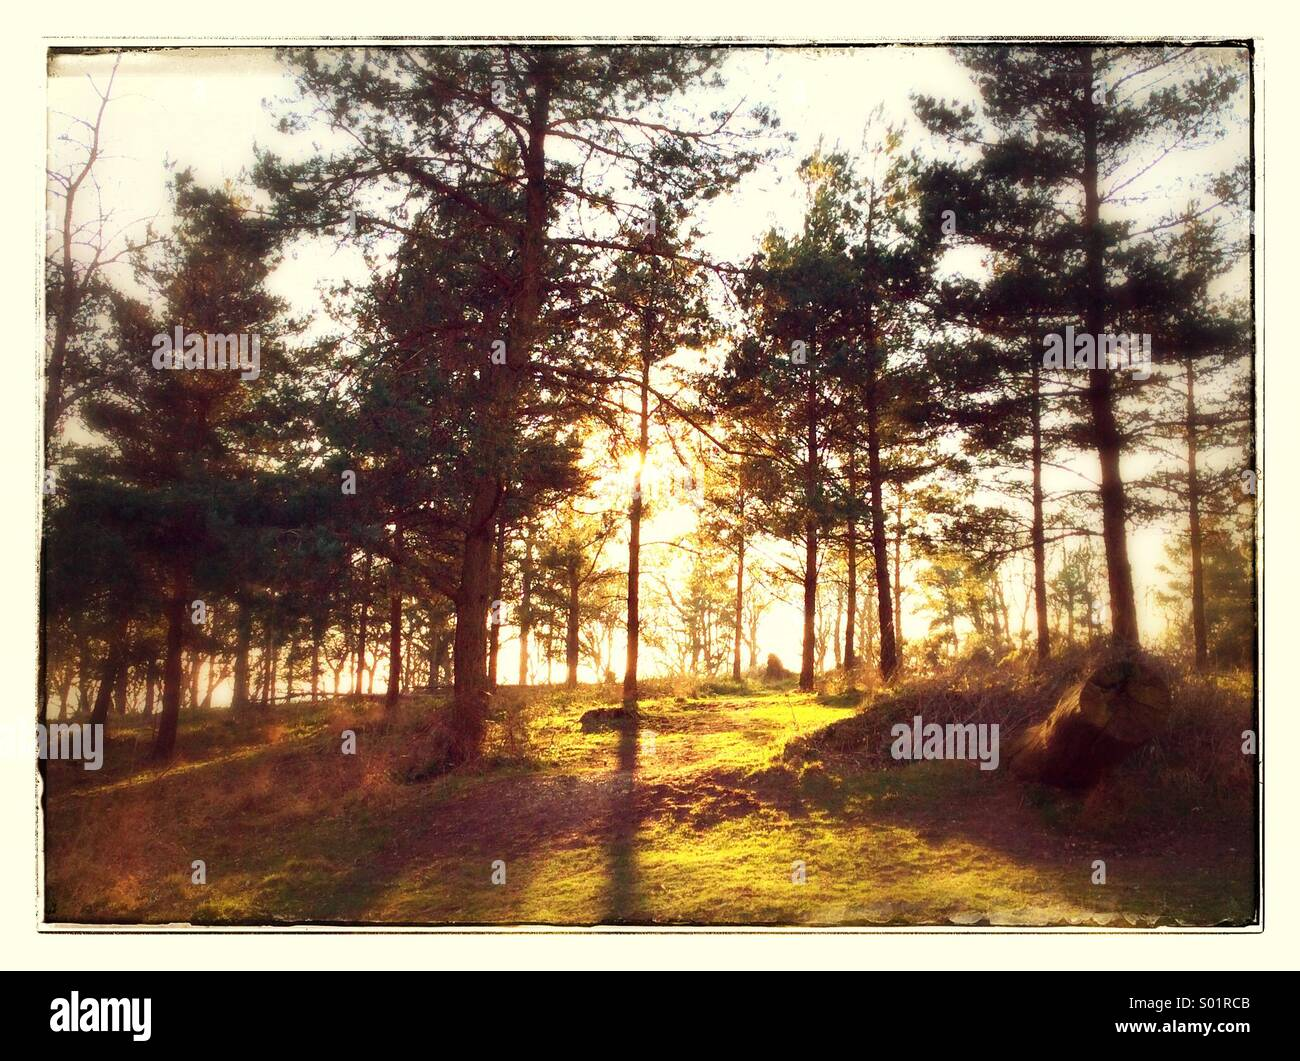 A forest with the sun shining through the trees. - Stock Image